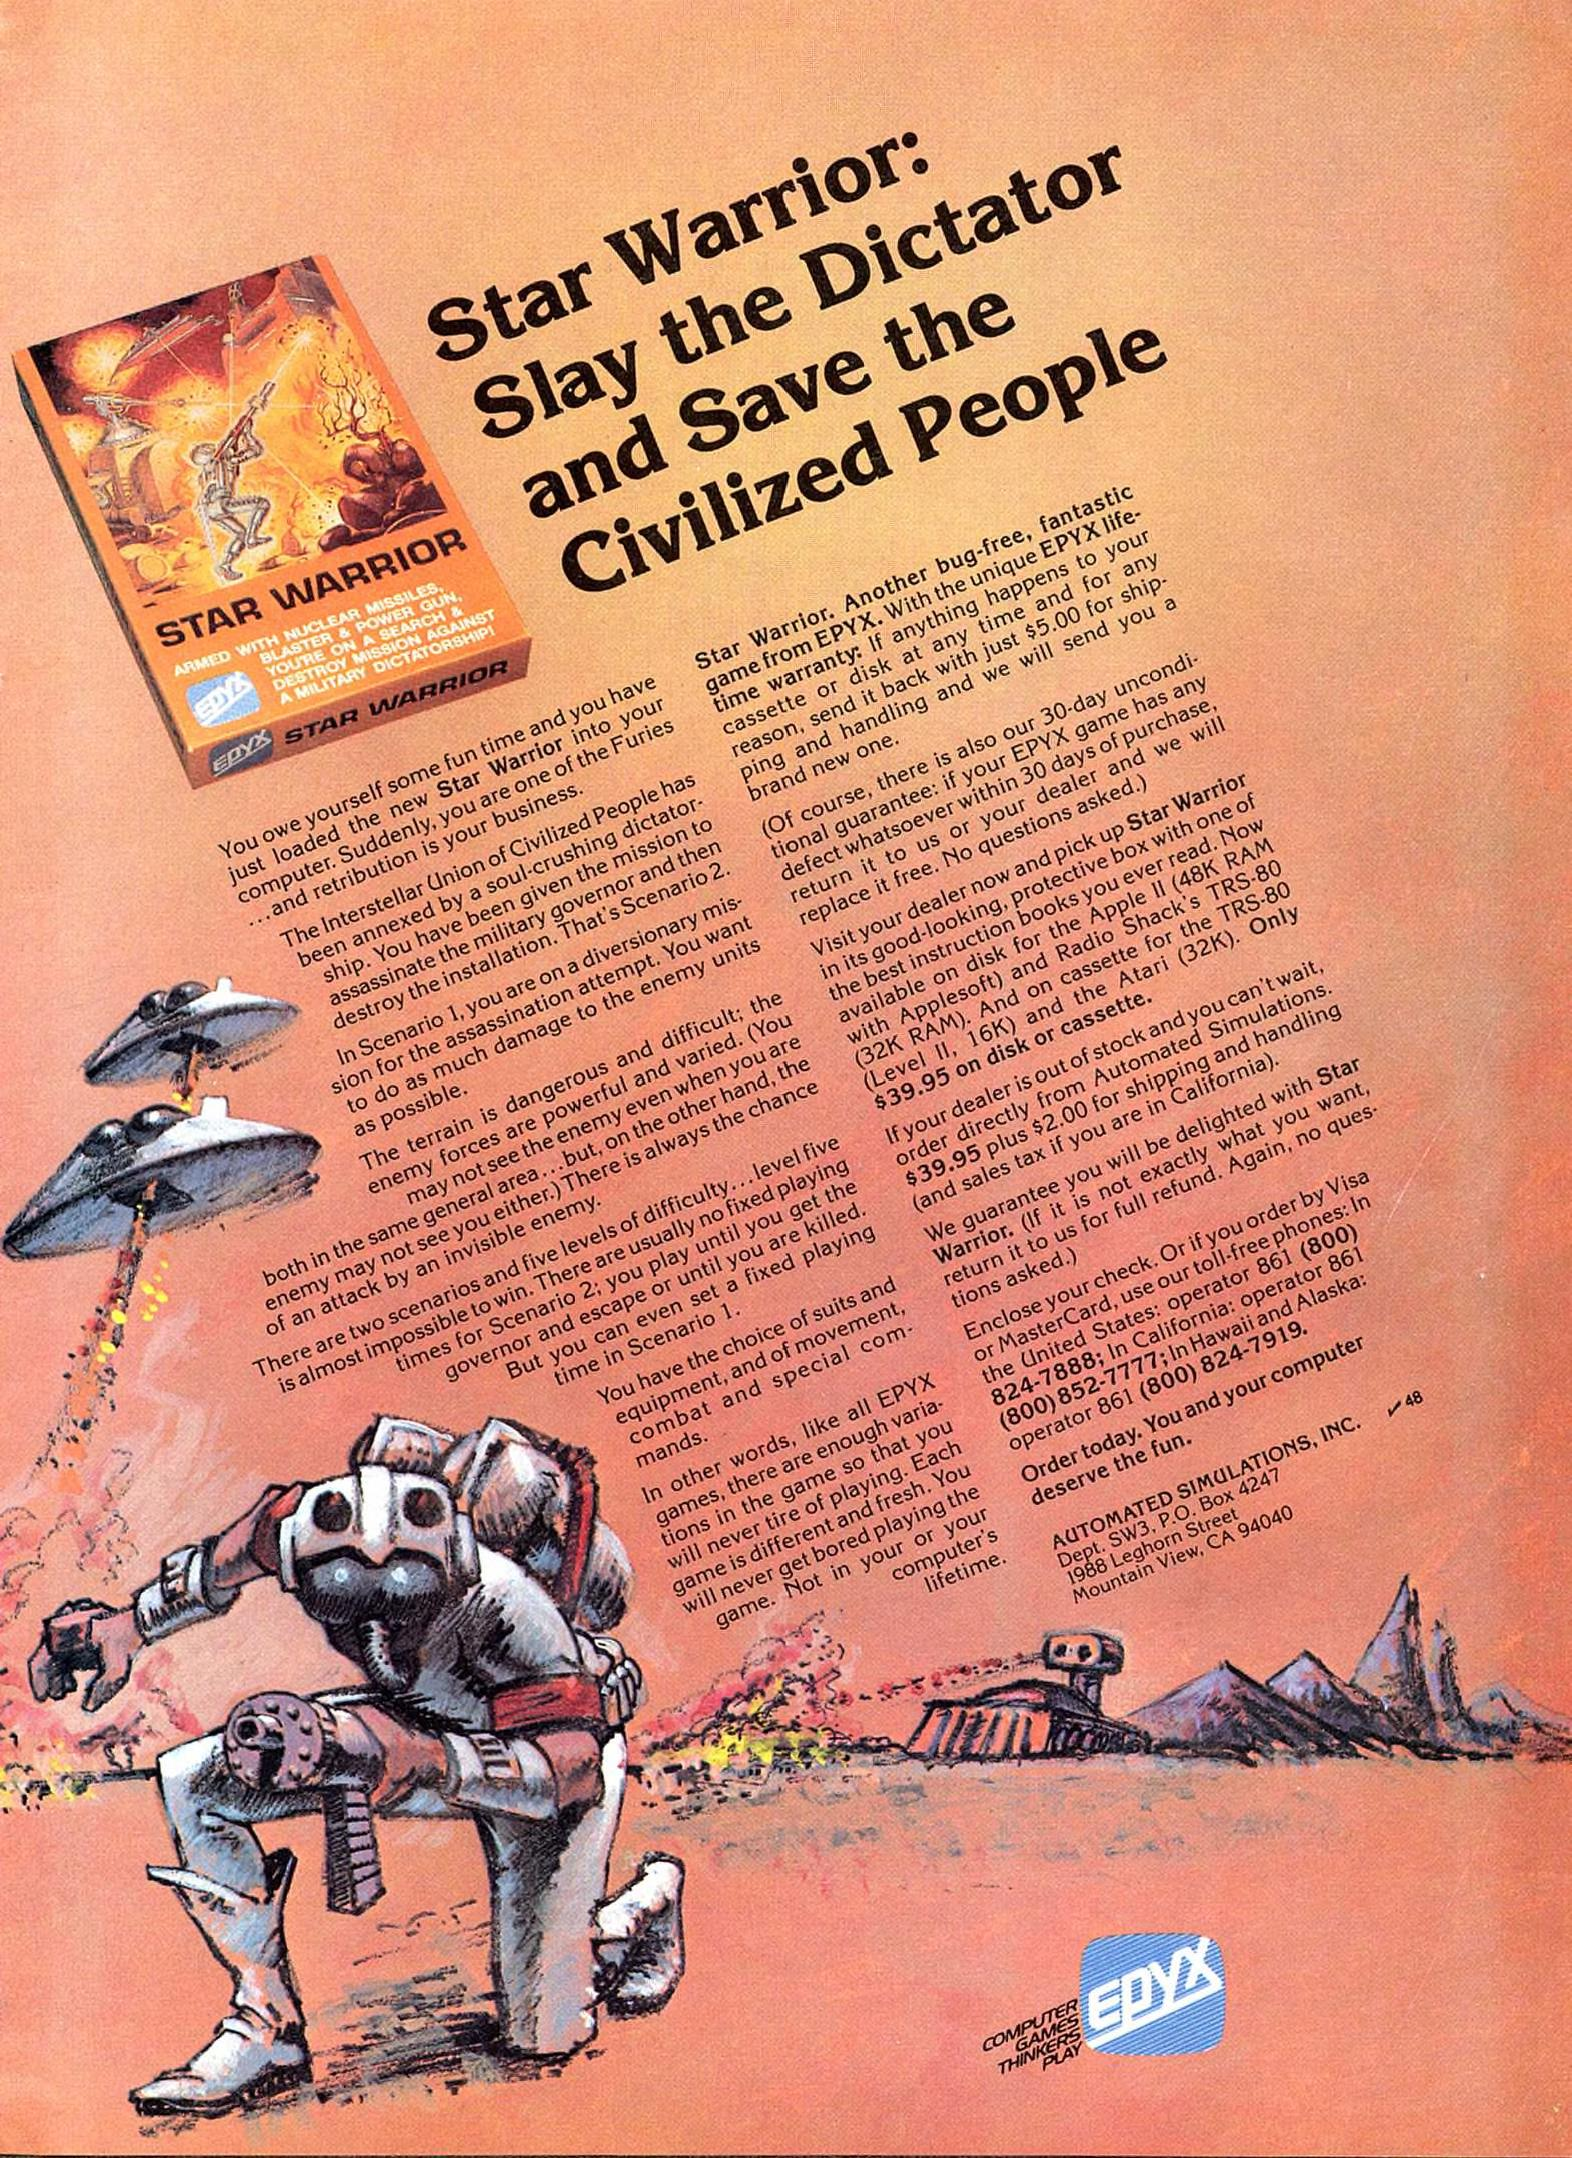 Star Warrior, a computer game by Epyx/Automated Simulations